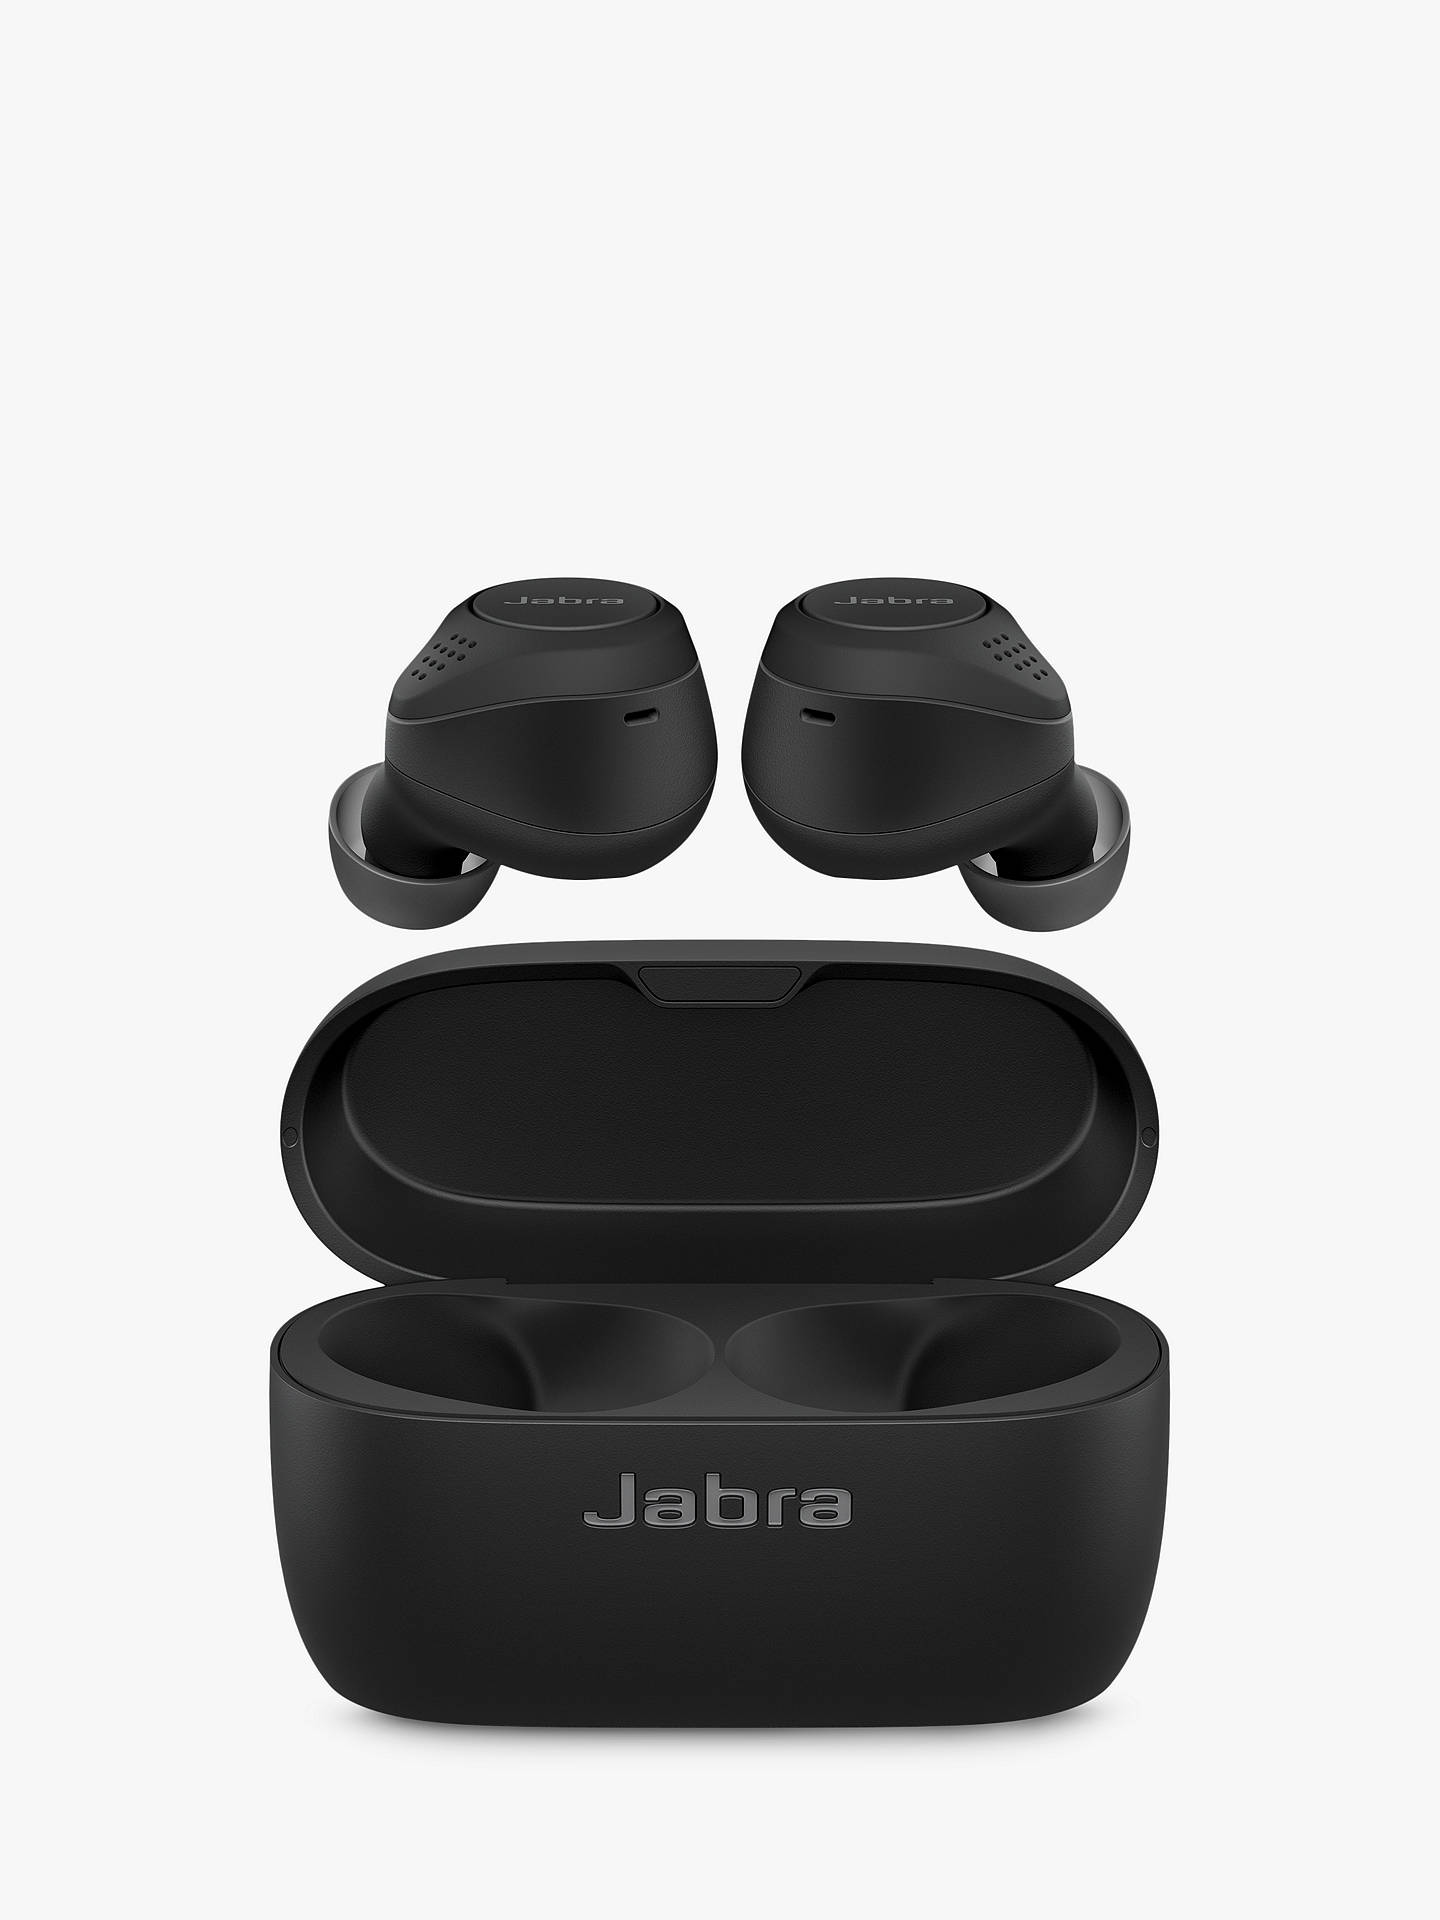 Buy Jabra Elite 75t True Wireless Bluetooth Active Noise Cancelling In-Ear Headphones with Mic/Remote, Black Online at johnlewis.com